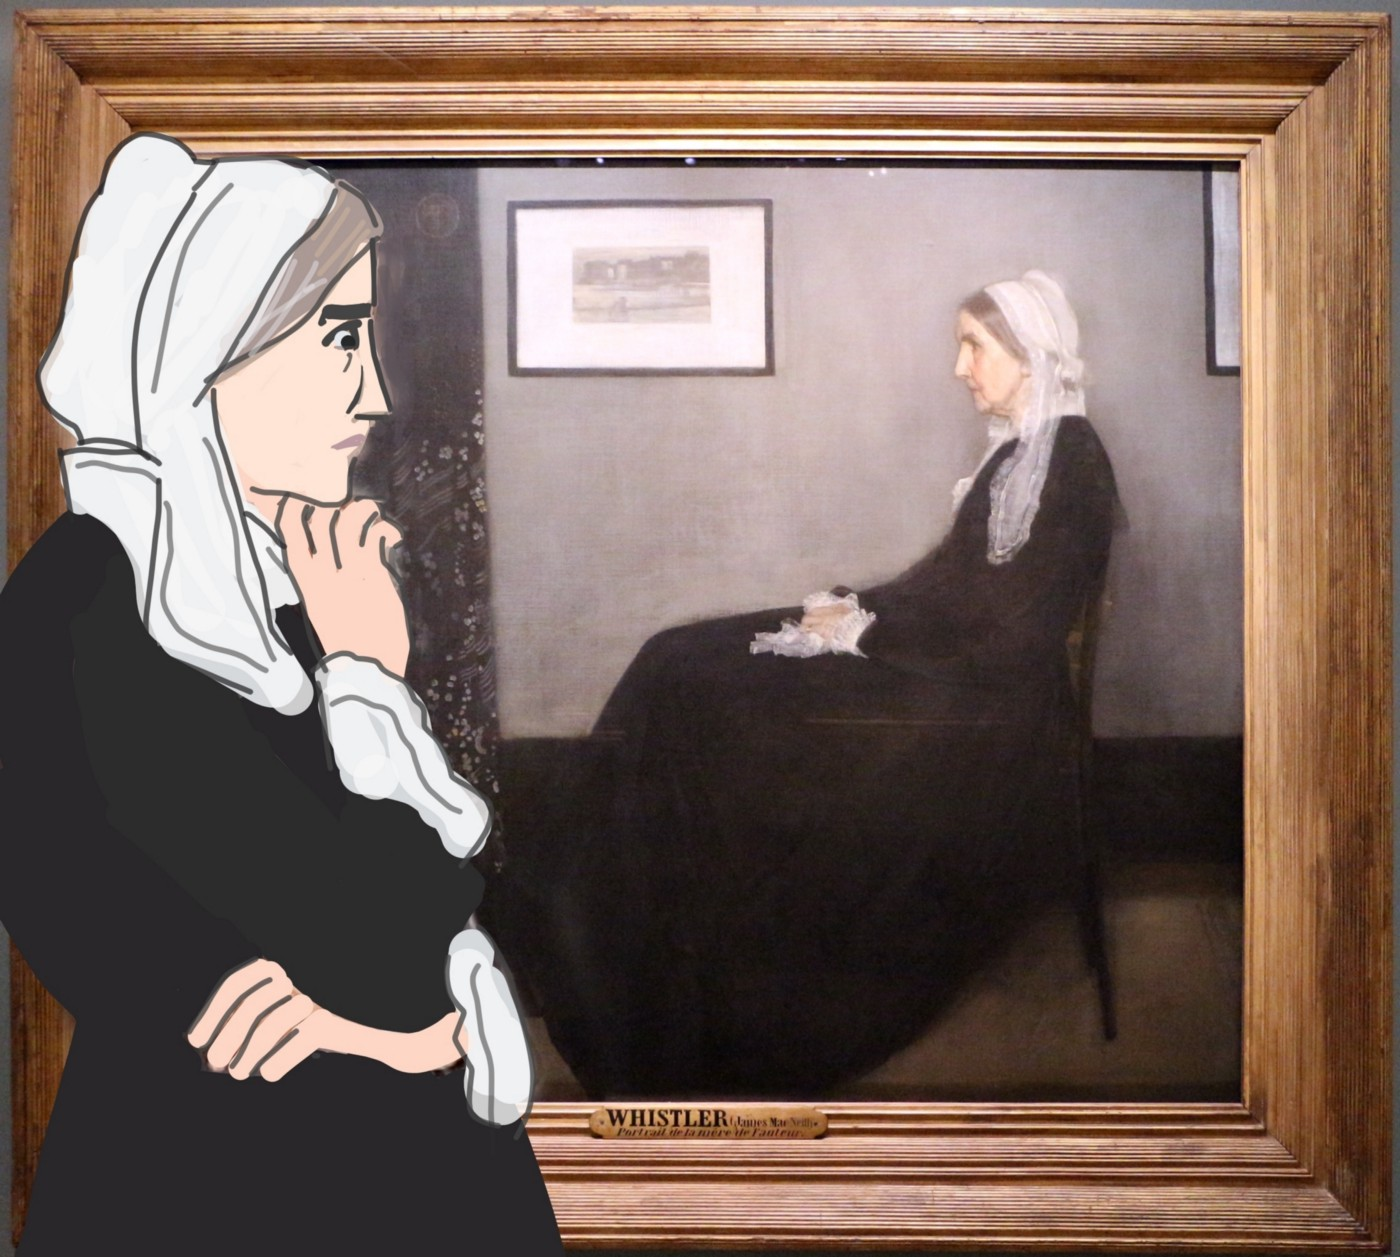 Cartoon version of Whistler's Mother inspecting painting